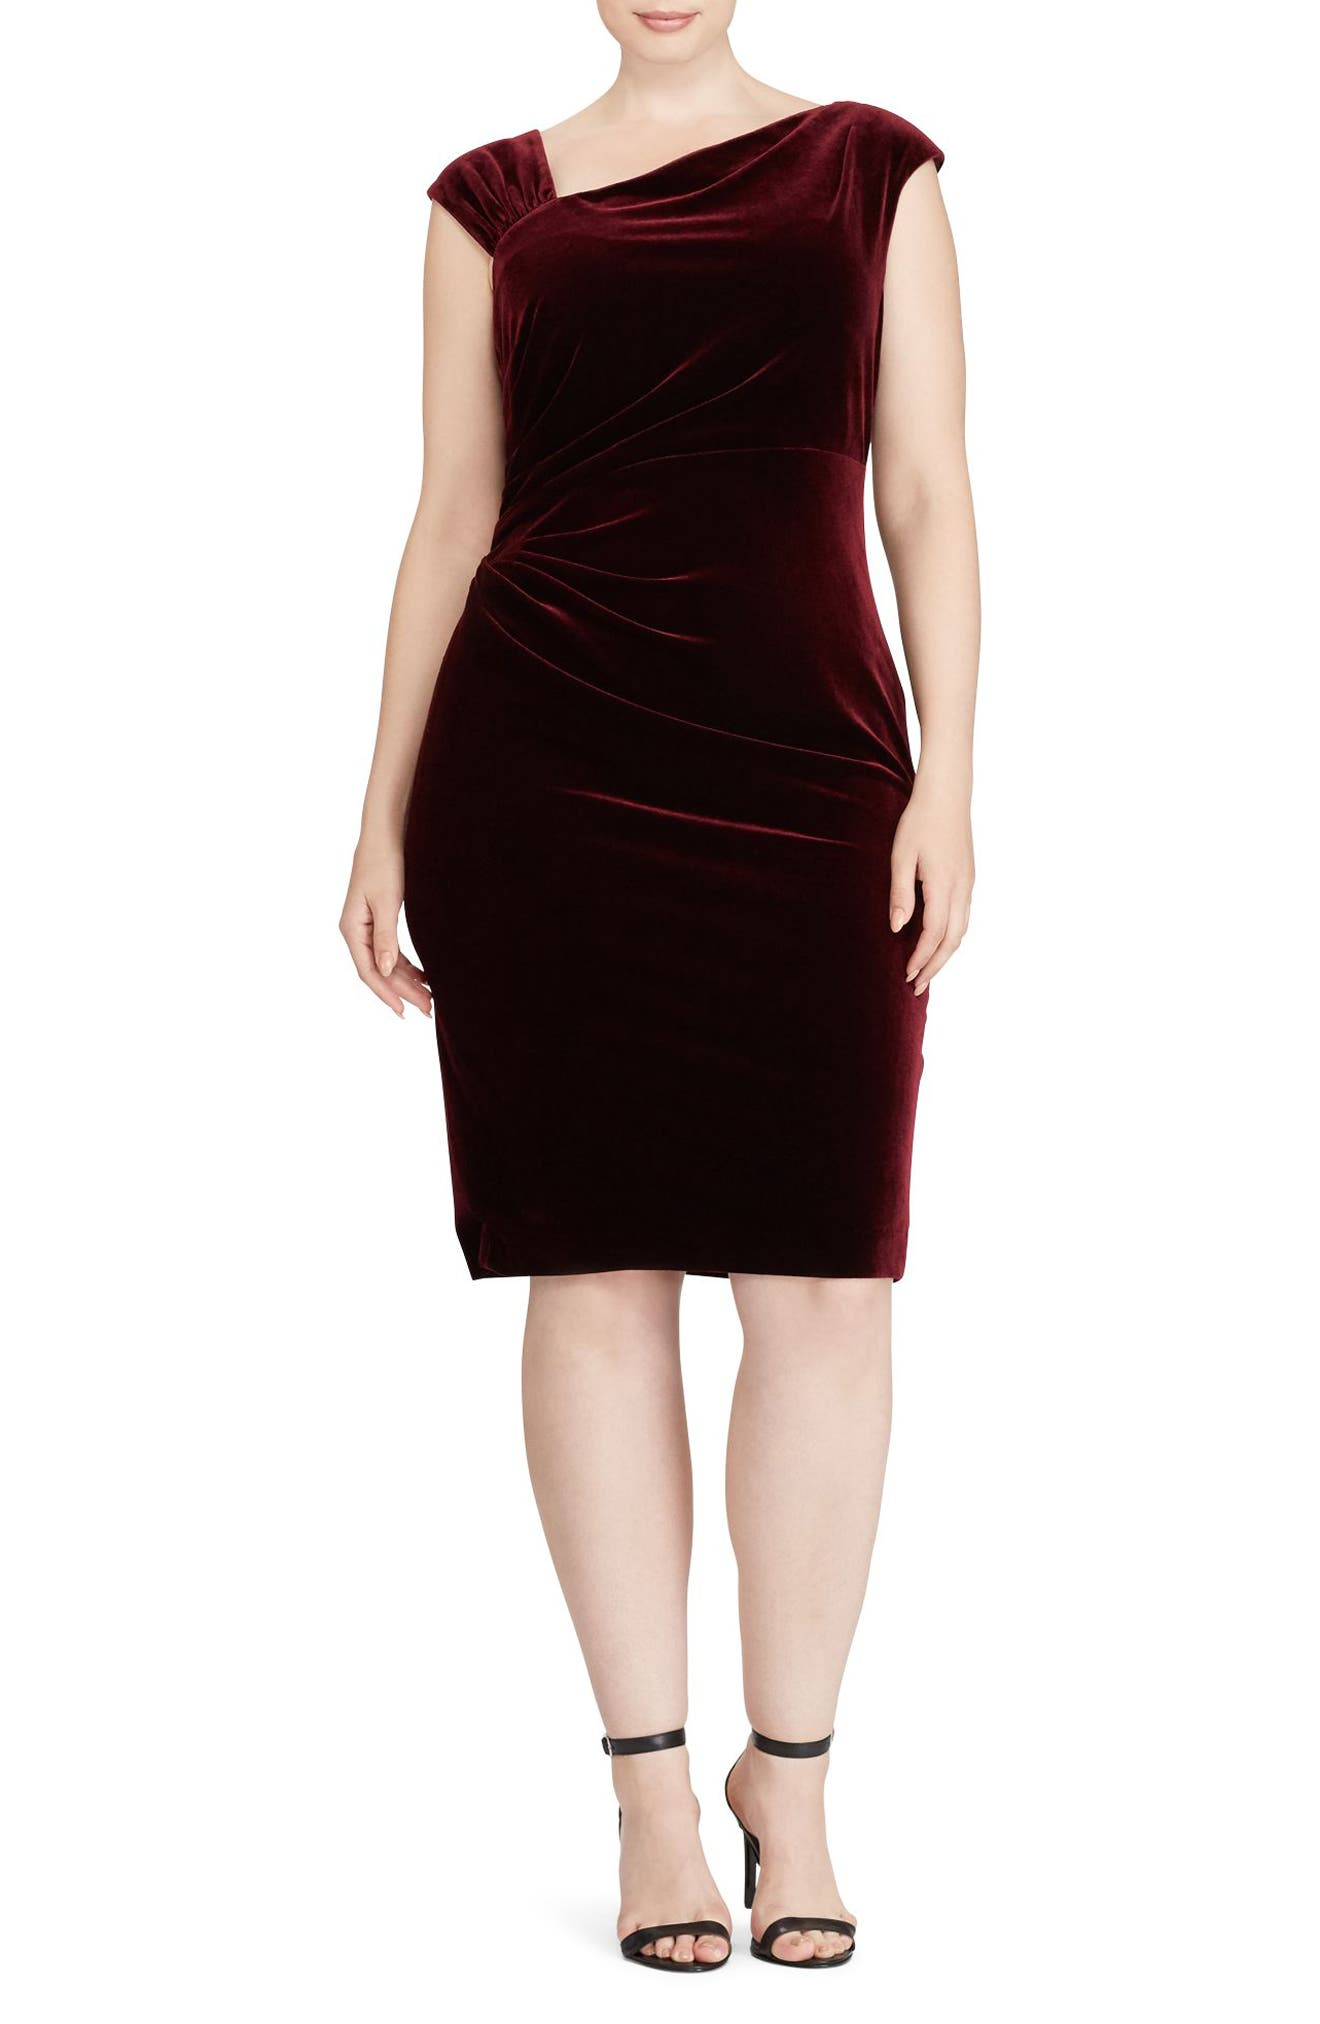 Alternate Image 1 Selected - Lauren Ralph Lauren Stretch Velvet Sheath Dress (Plus Size)